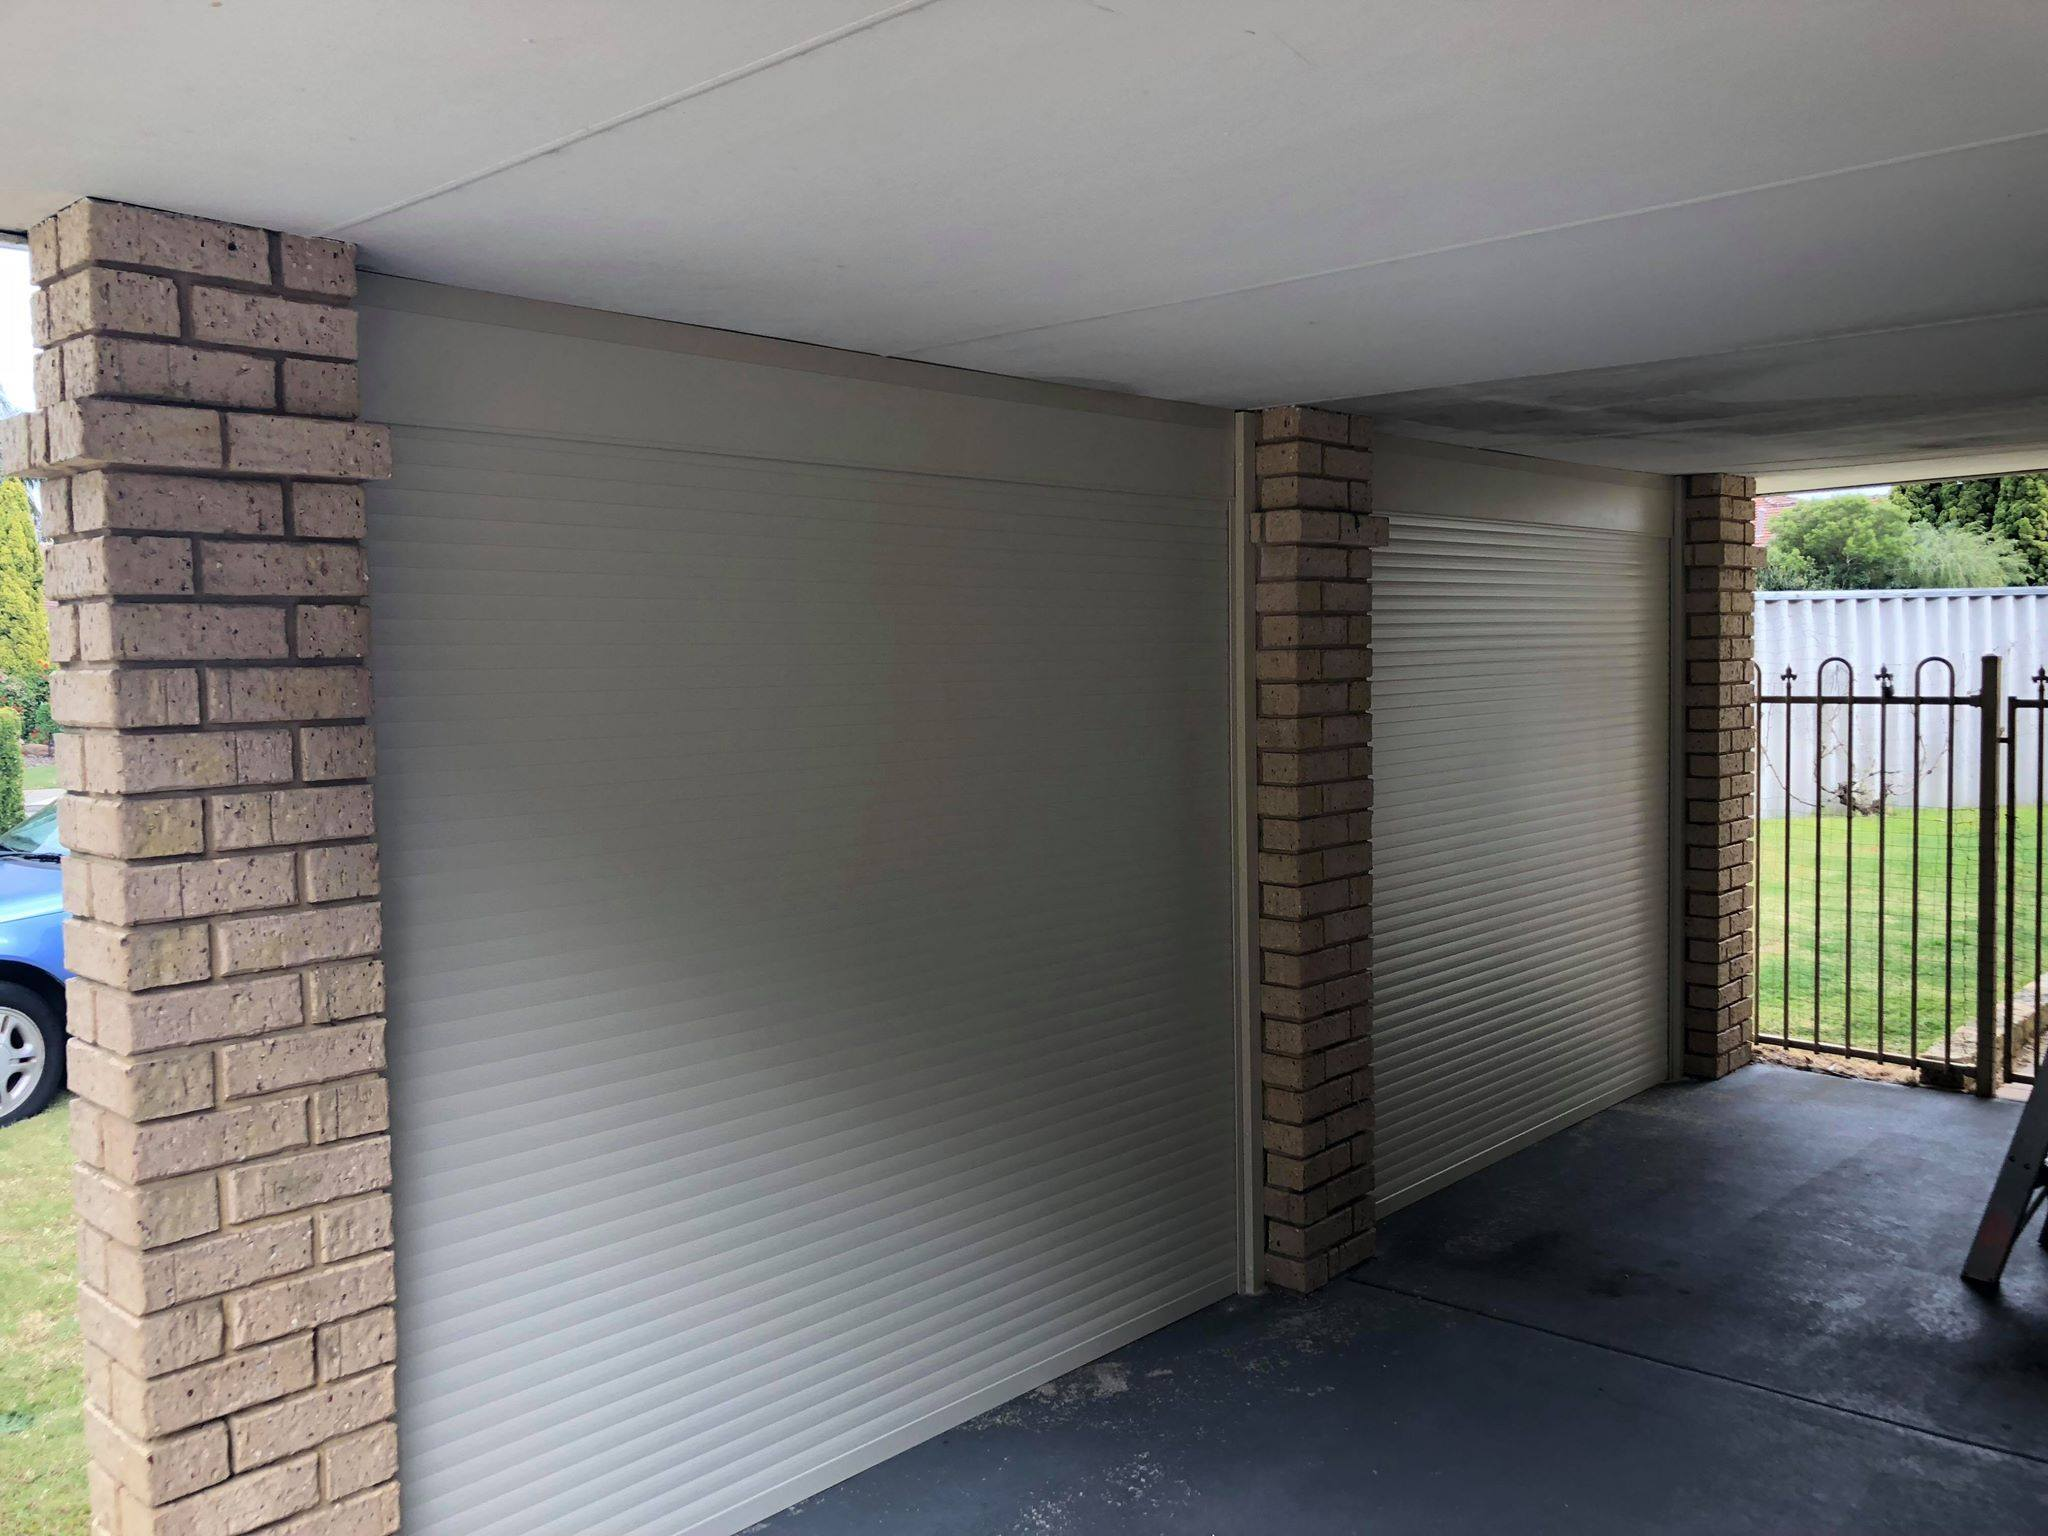 Roller Shutters on the side of a garage